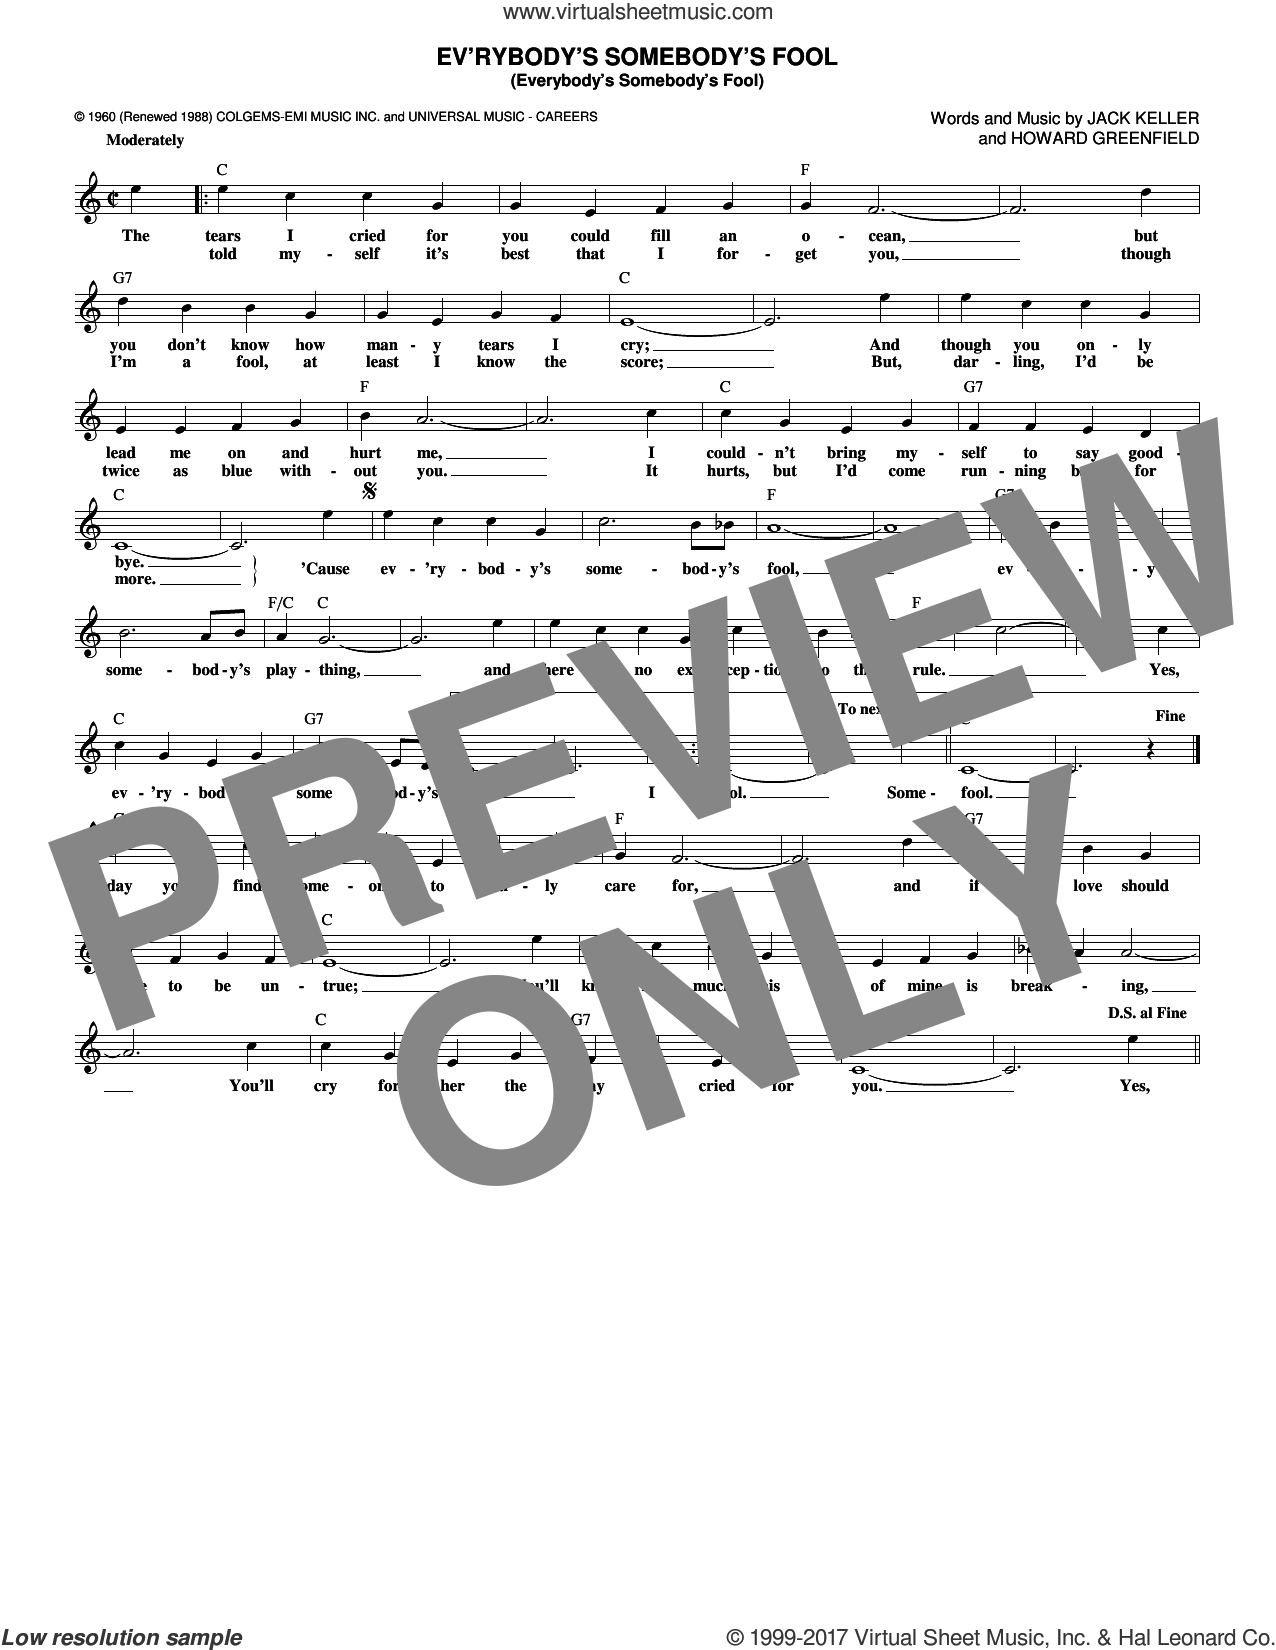 Ev'rybody's Somebody's Fool (Everybody's Somebody's Fool) sheet music for voice and other instruments (fake book) by Jack Keller, Connie Francis and Howard Greenfield. Score Image Preview.